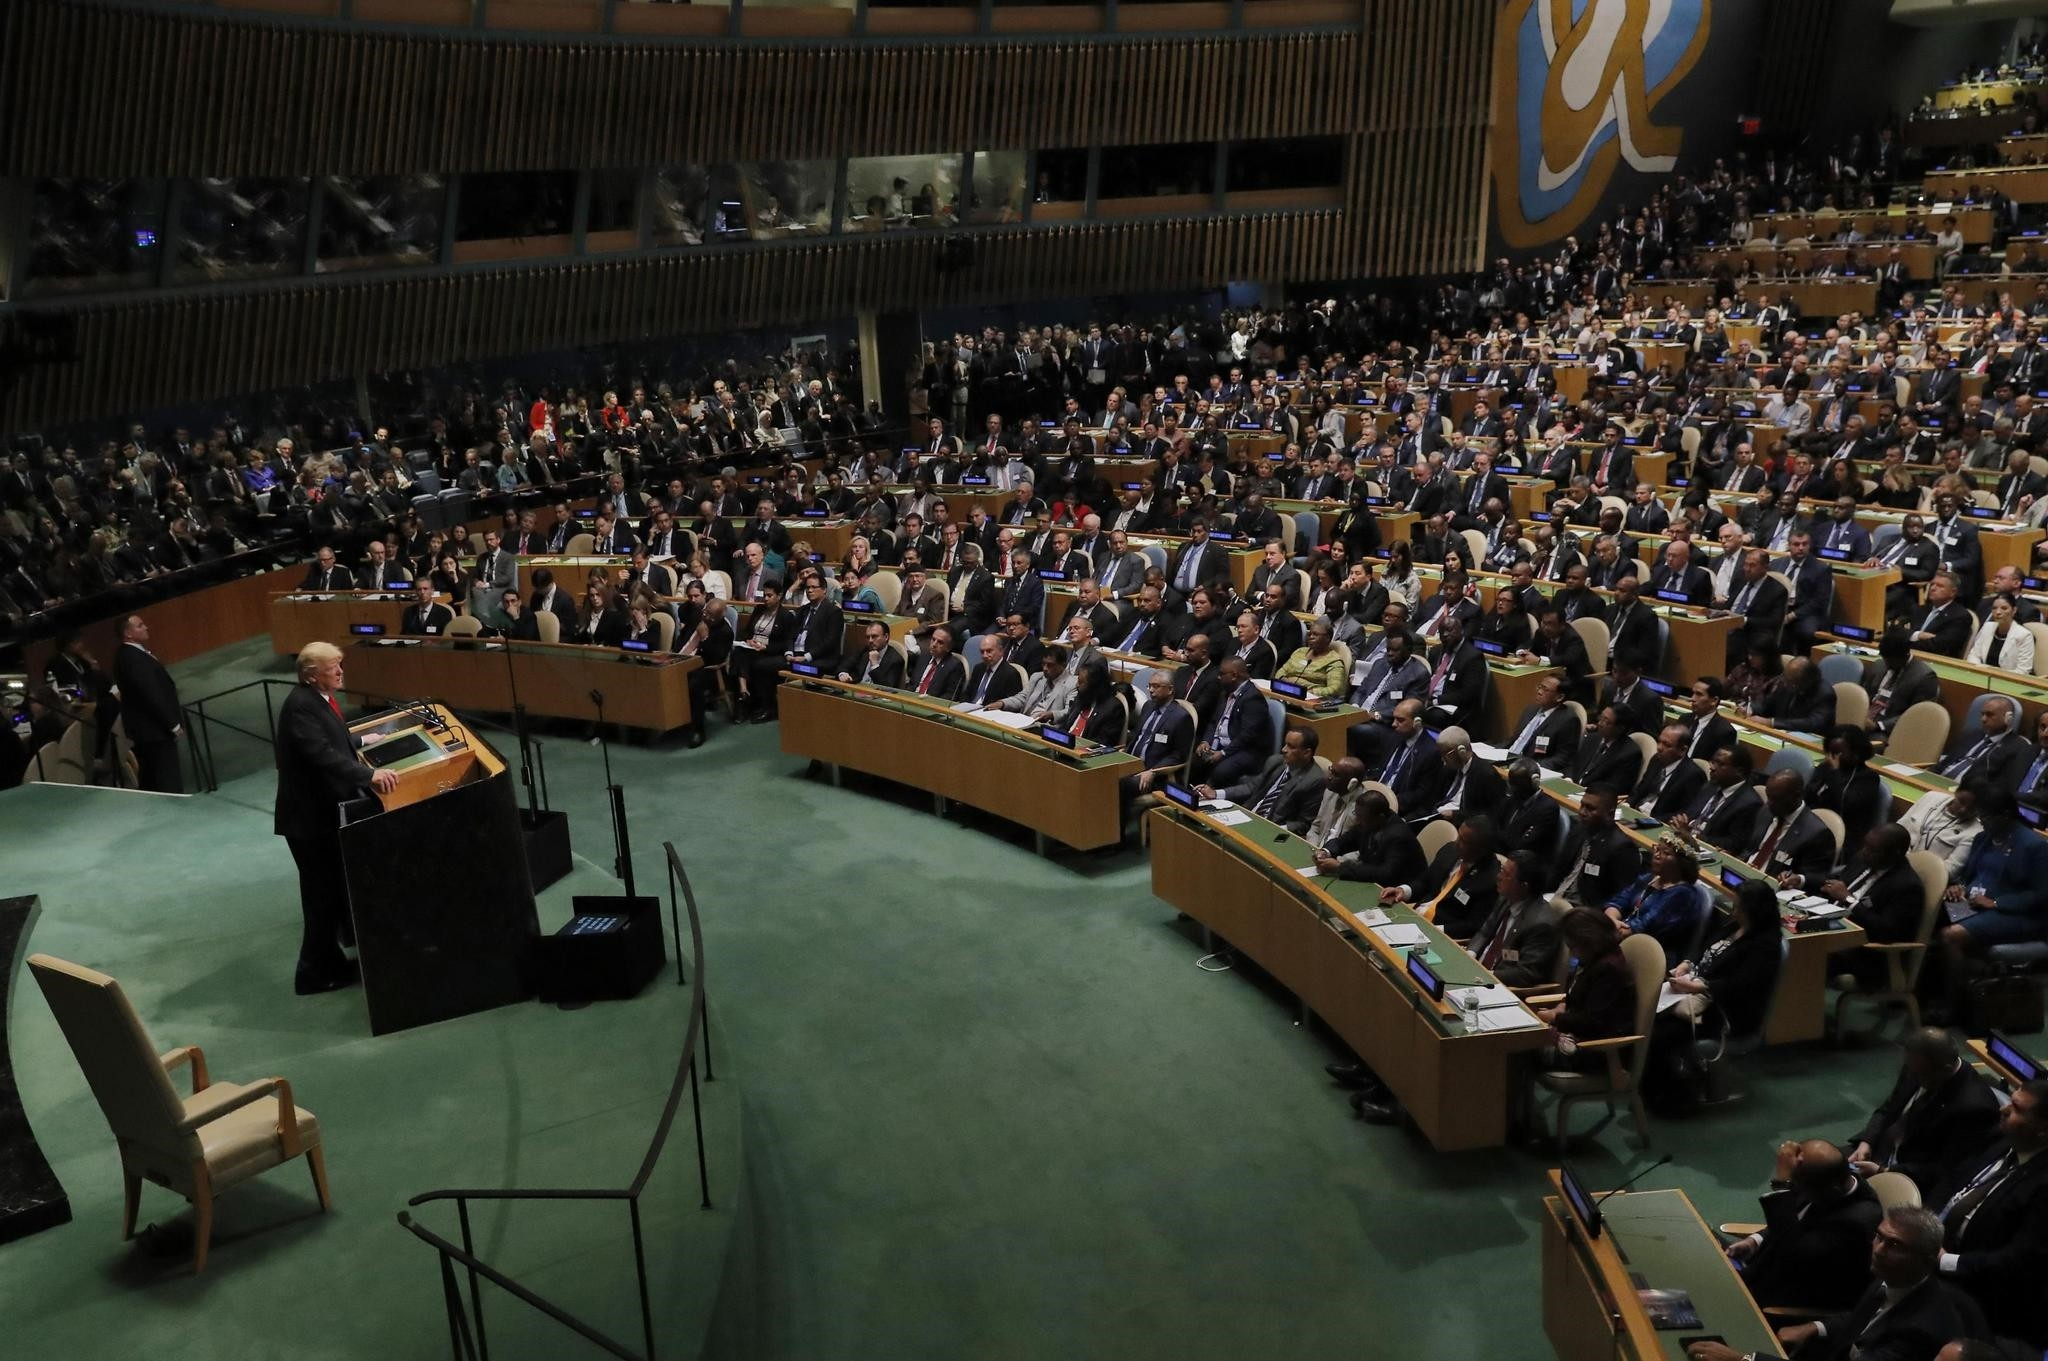 U.S. President Donald Trump addresses the 73rd session of the U.N. General Assembly in New York, Sept. 25.